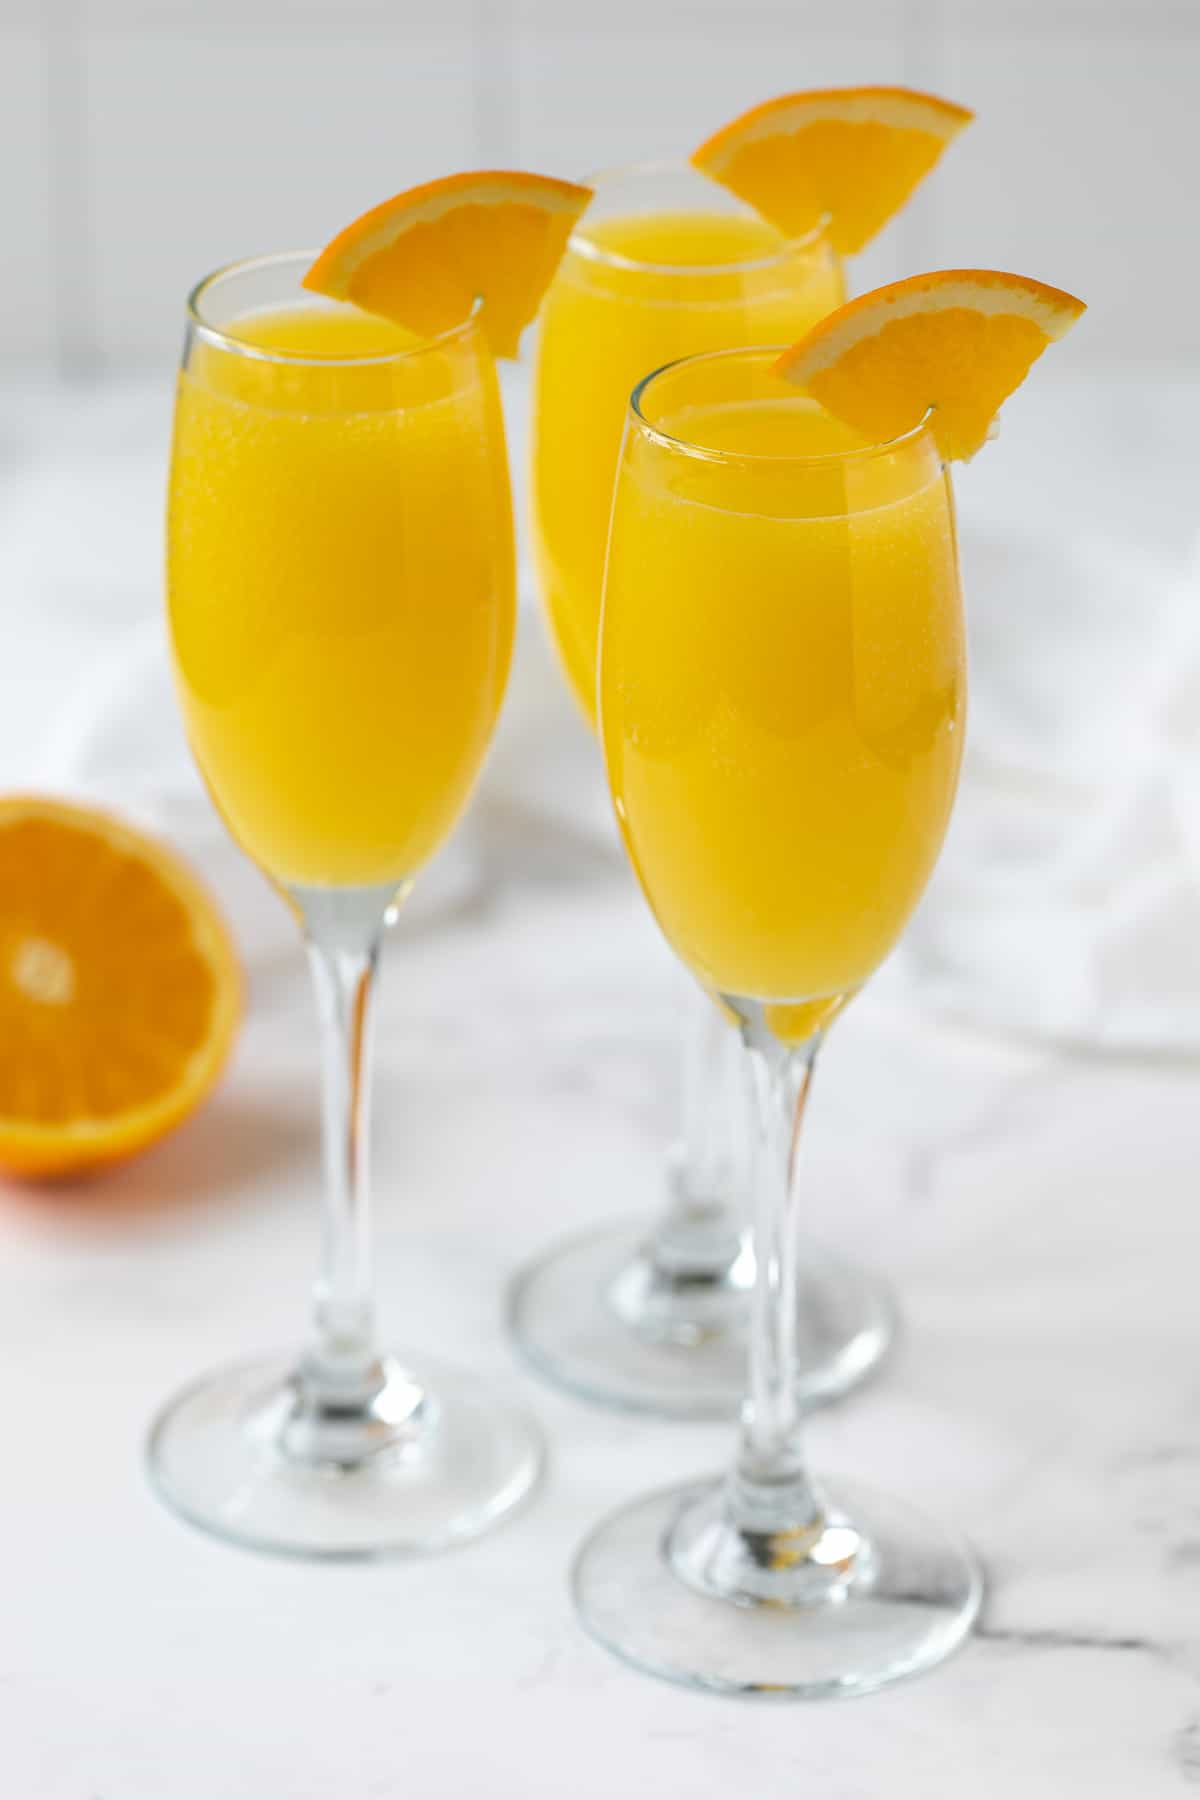 Three mimosas garnished with an orange slice on a white marble surface.